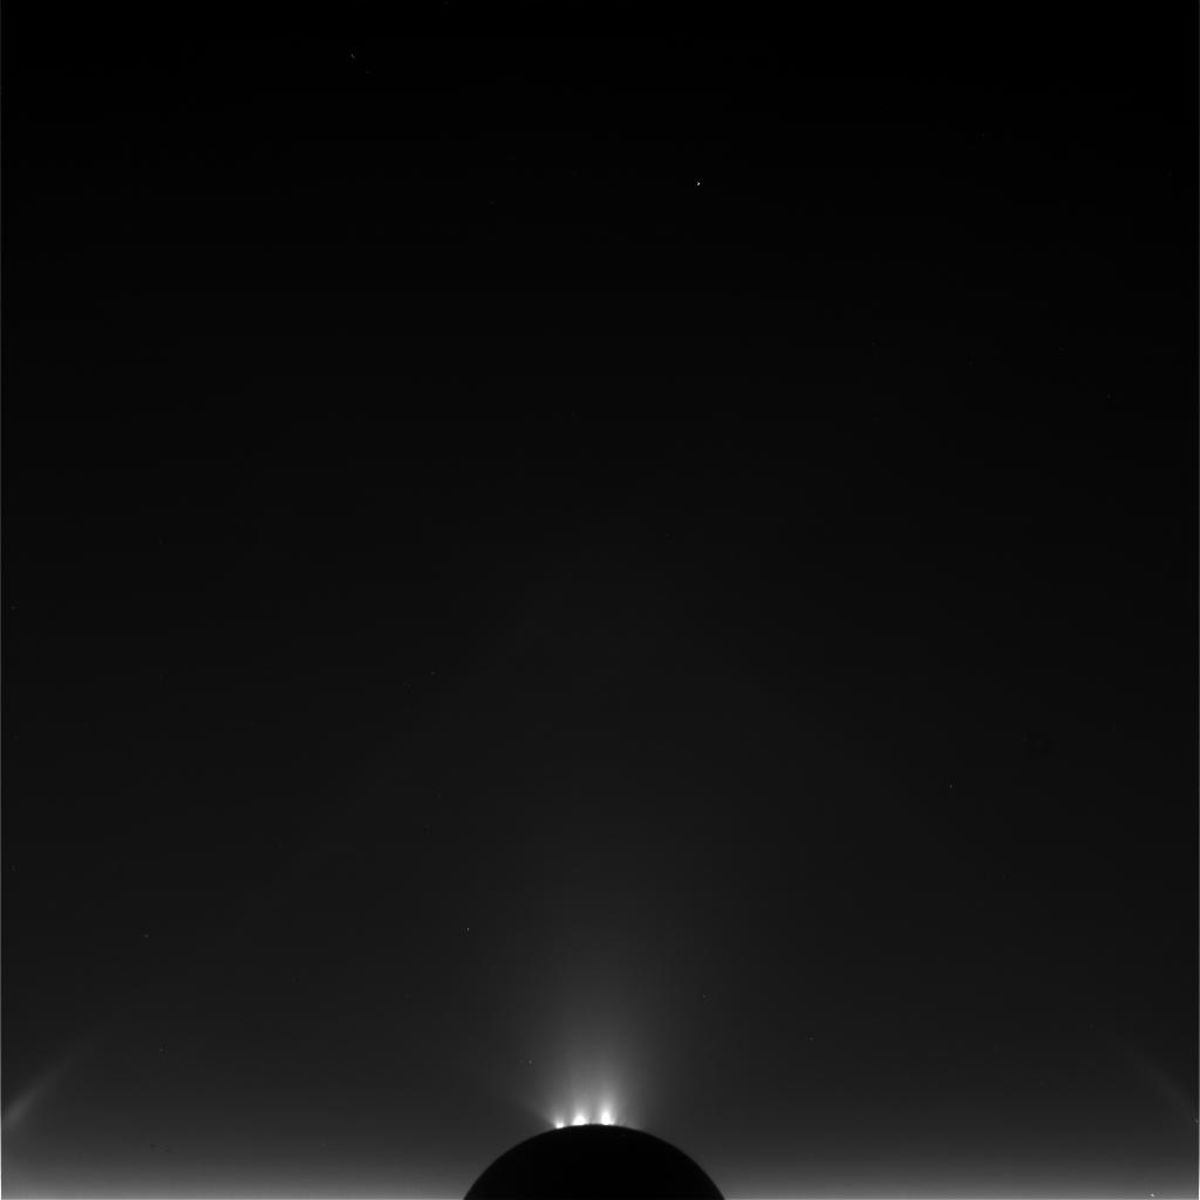 Dark silhouette of Saturn's moon in space, with glowing, cold jets visible above the surface.